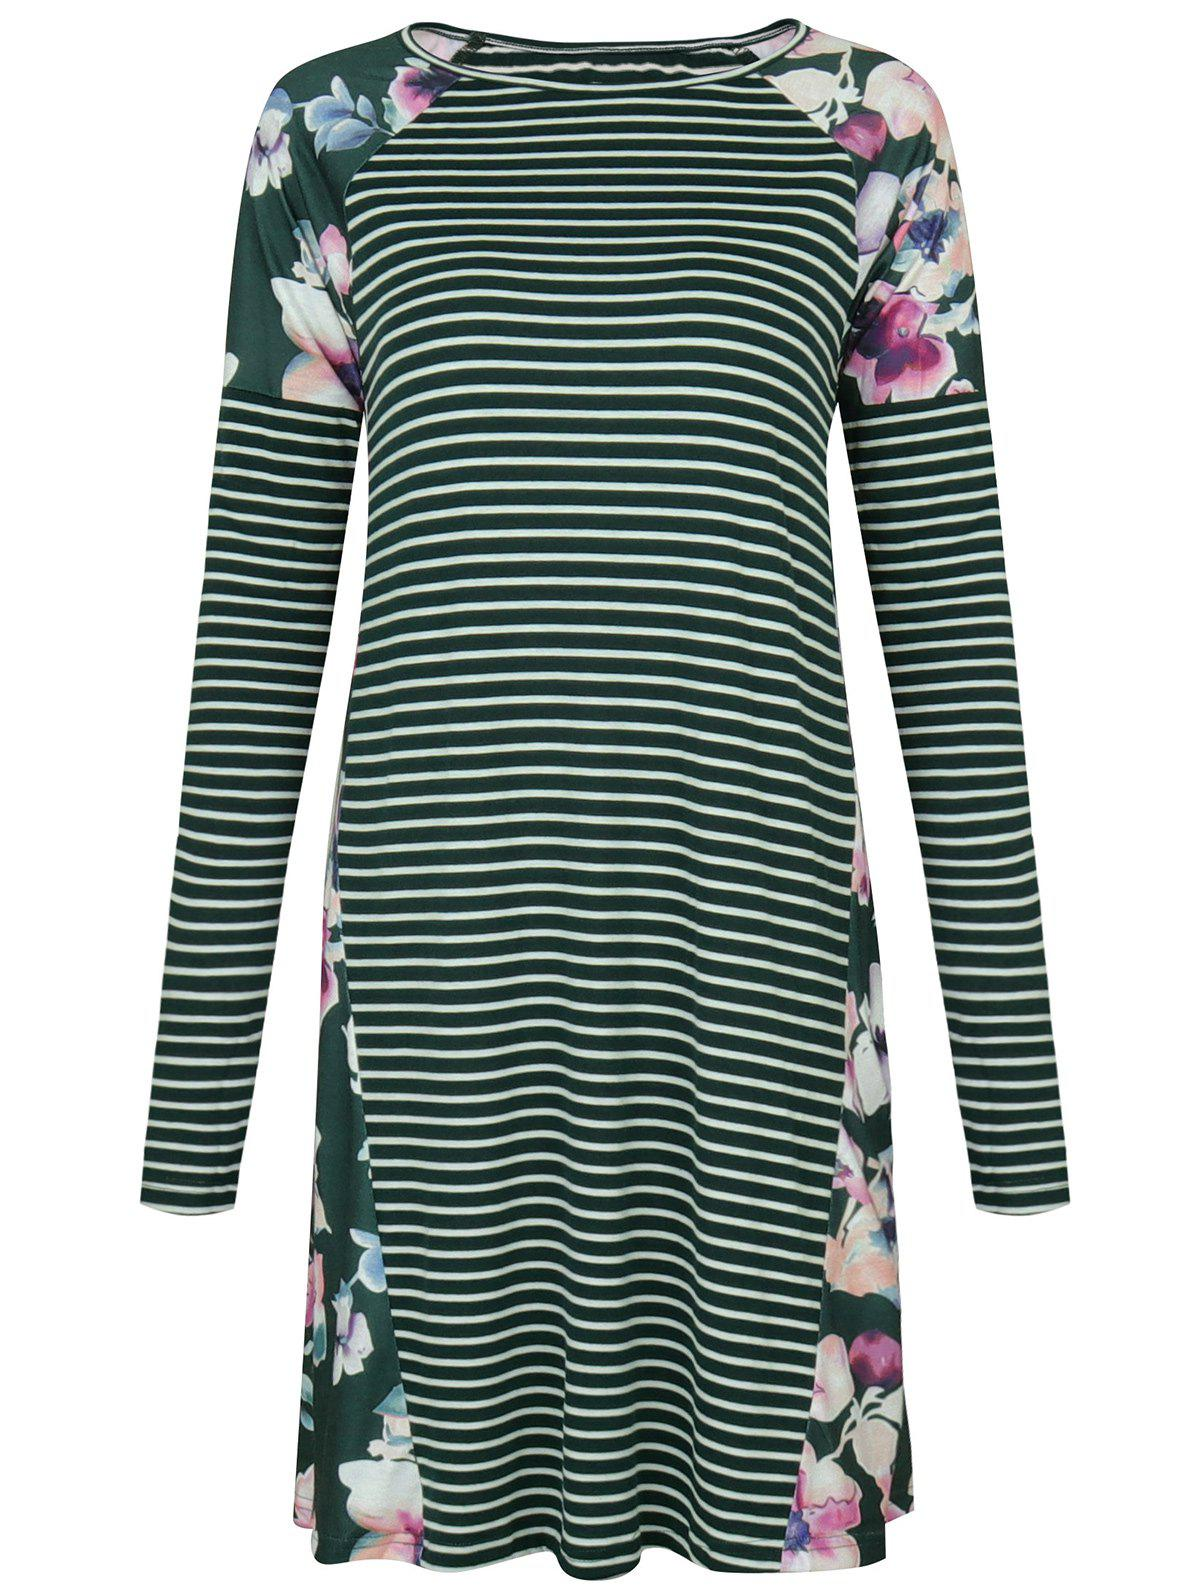 Raglan Sleeve Floral Print Striped Dress - GREEN S